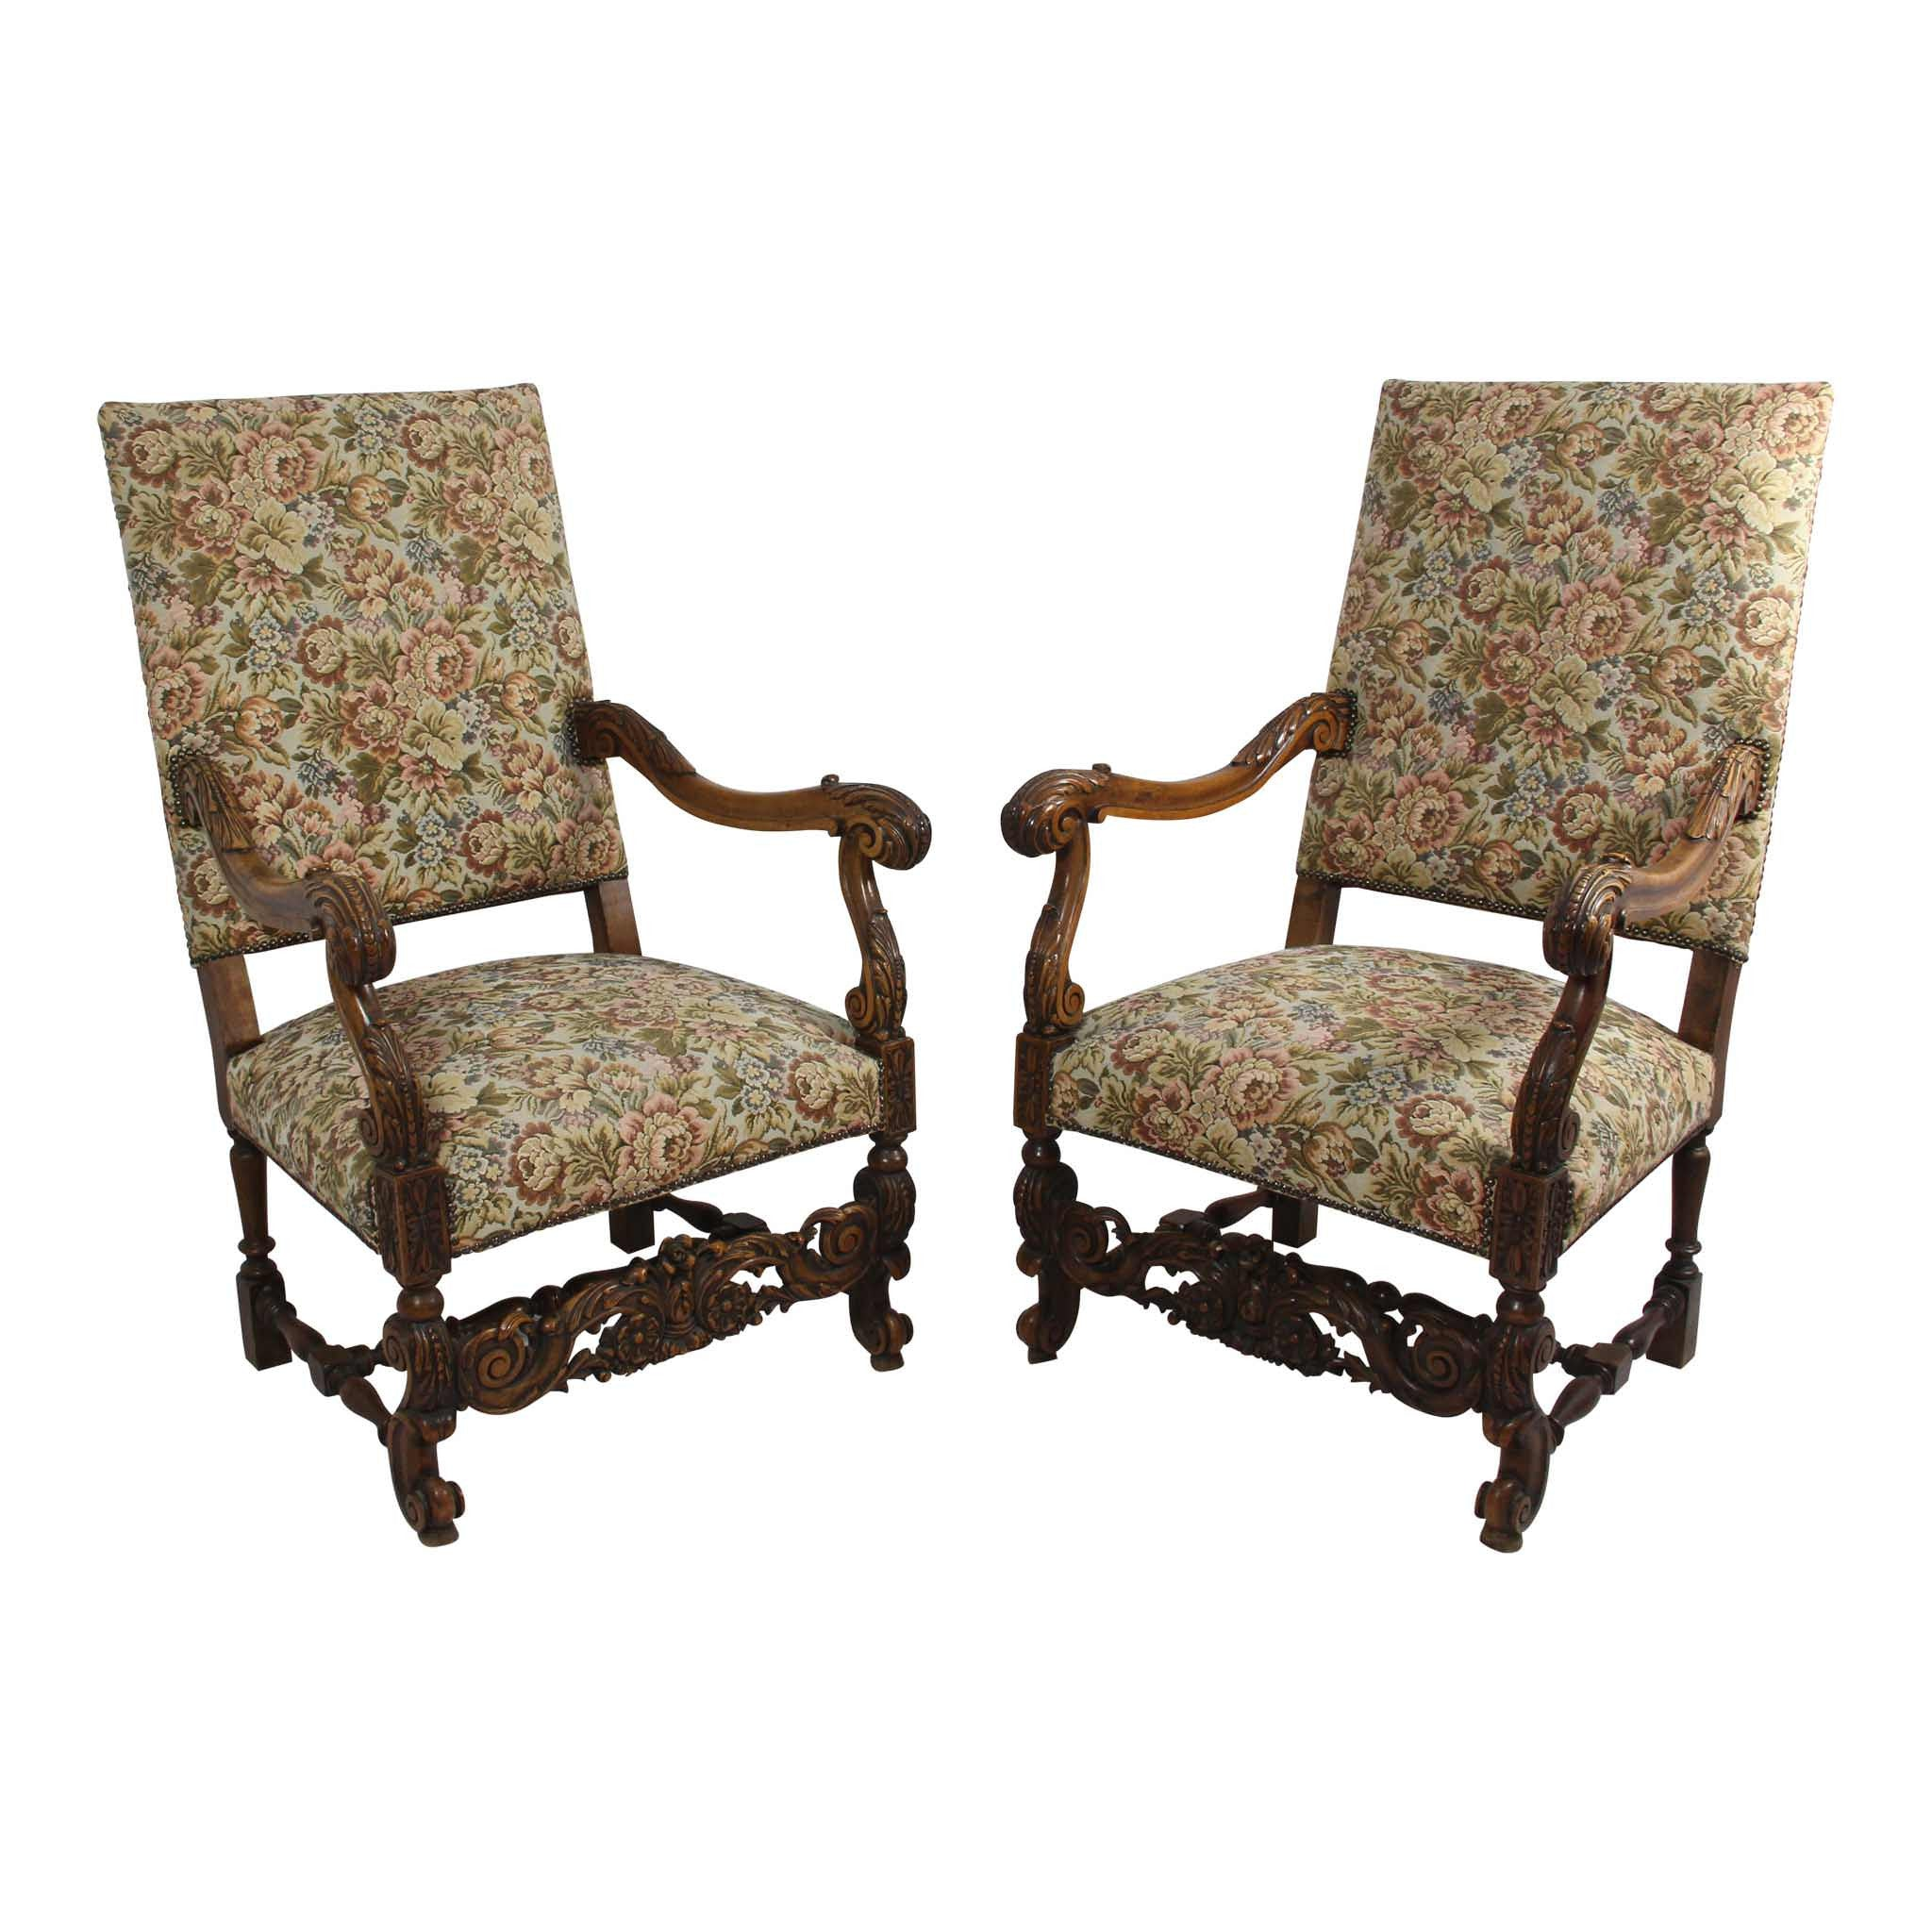 French Tapestry Chairs   Set Of 2